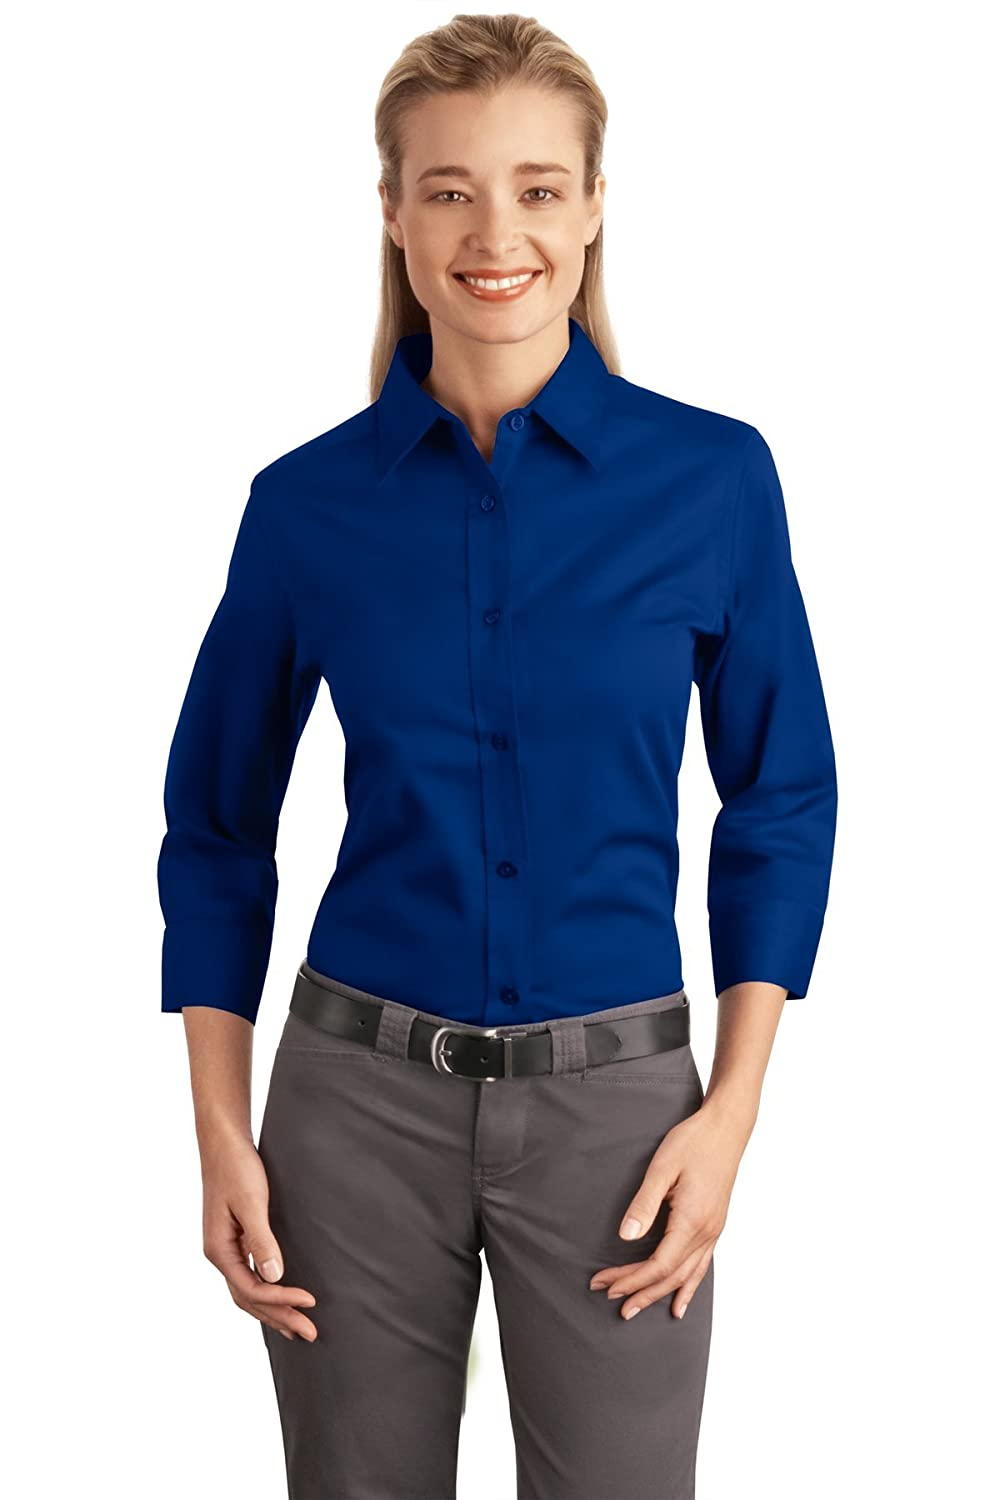 97cb4d2f Port Authority Women's 3/4 Sleeve Easy Care Shirt at Amazon Women's  Clothing store: